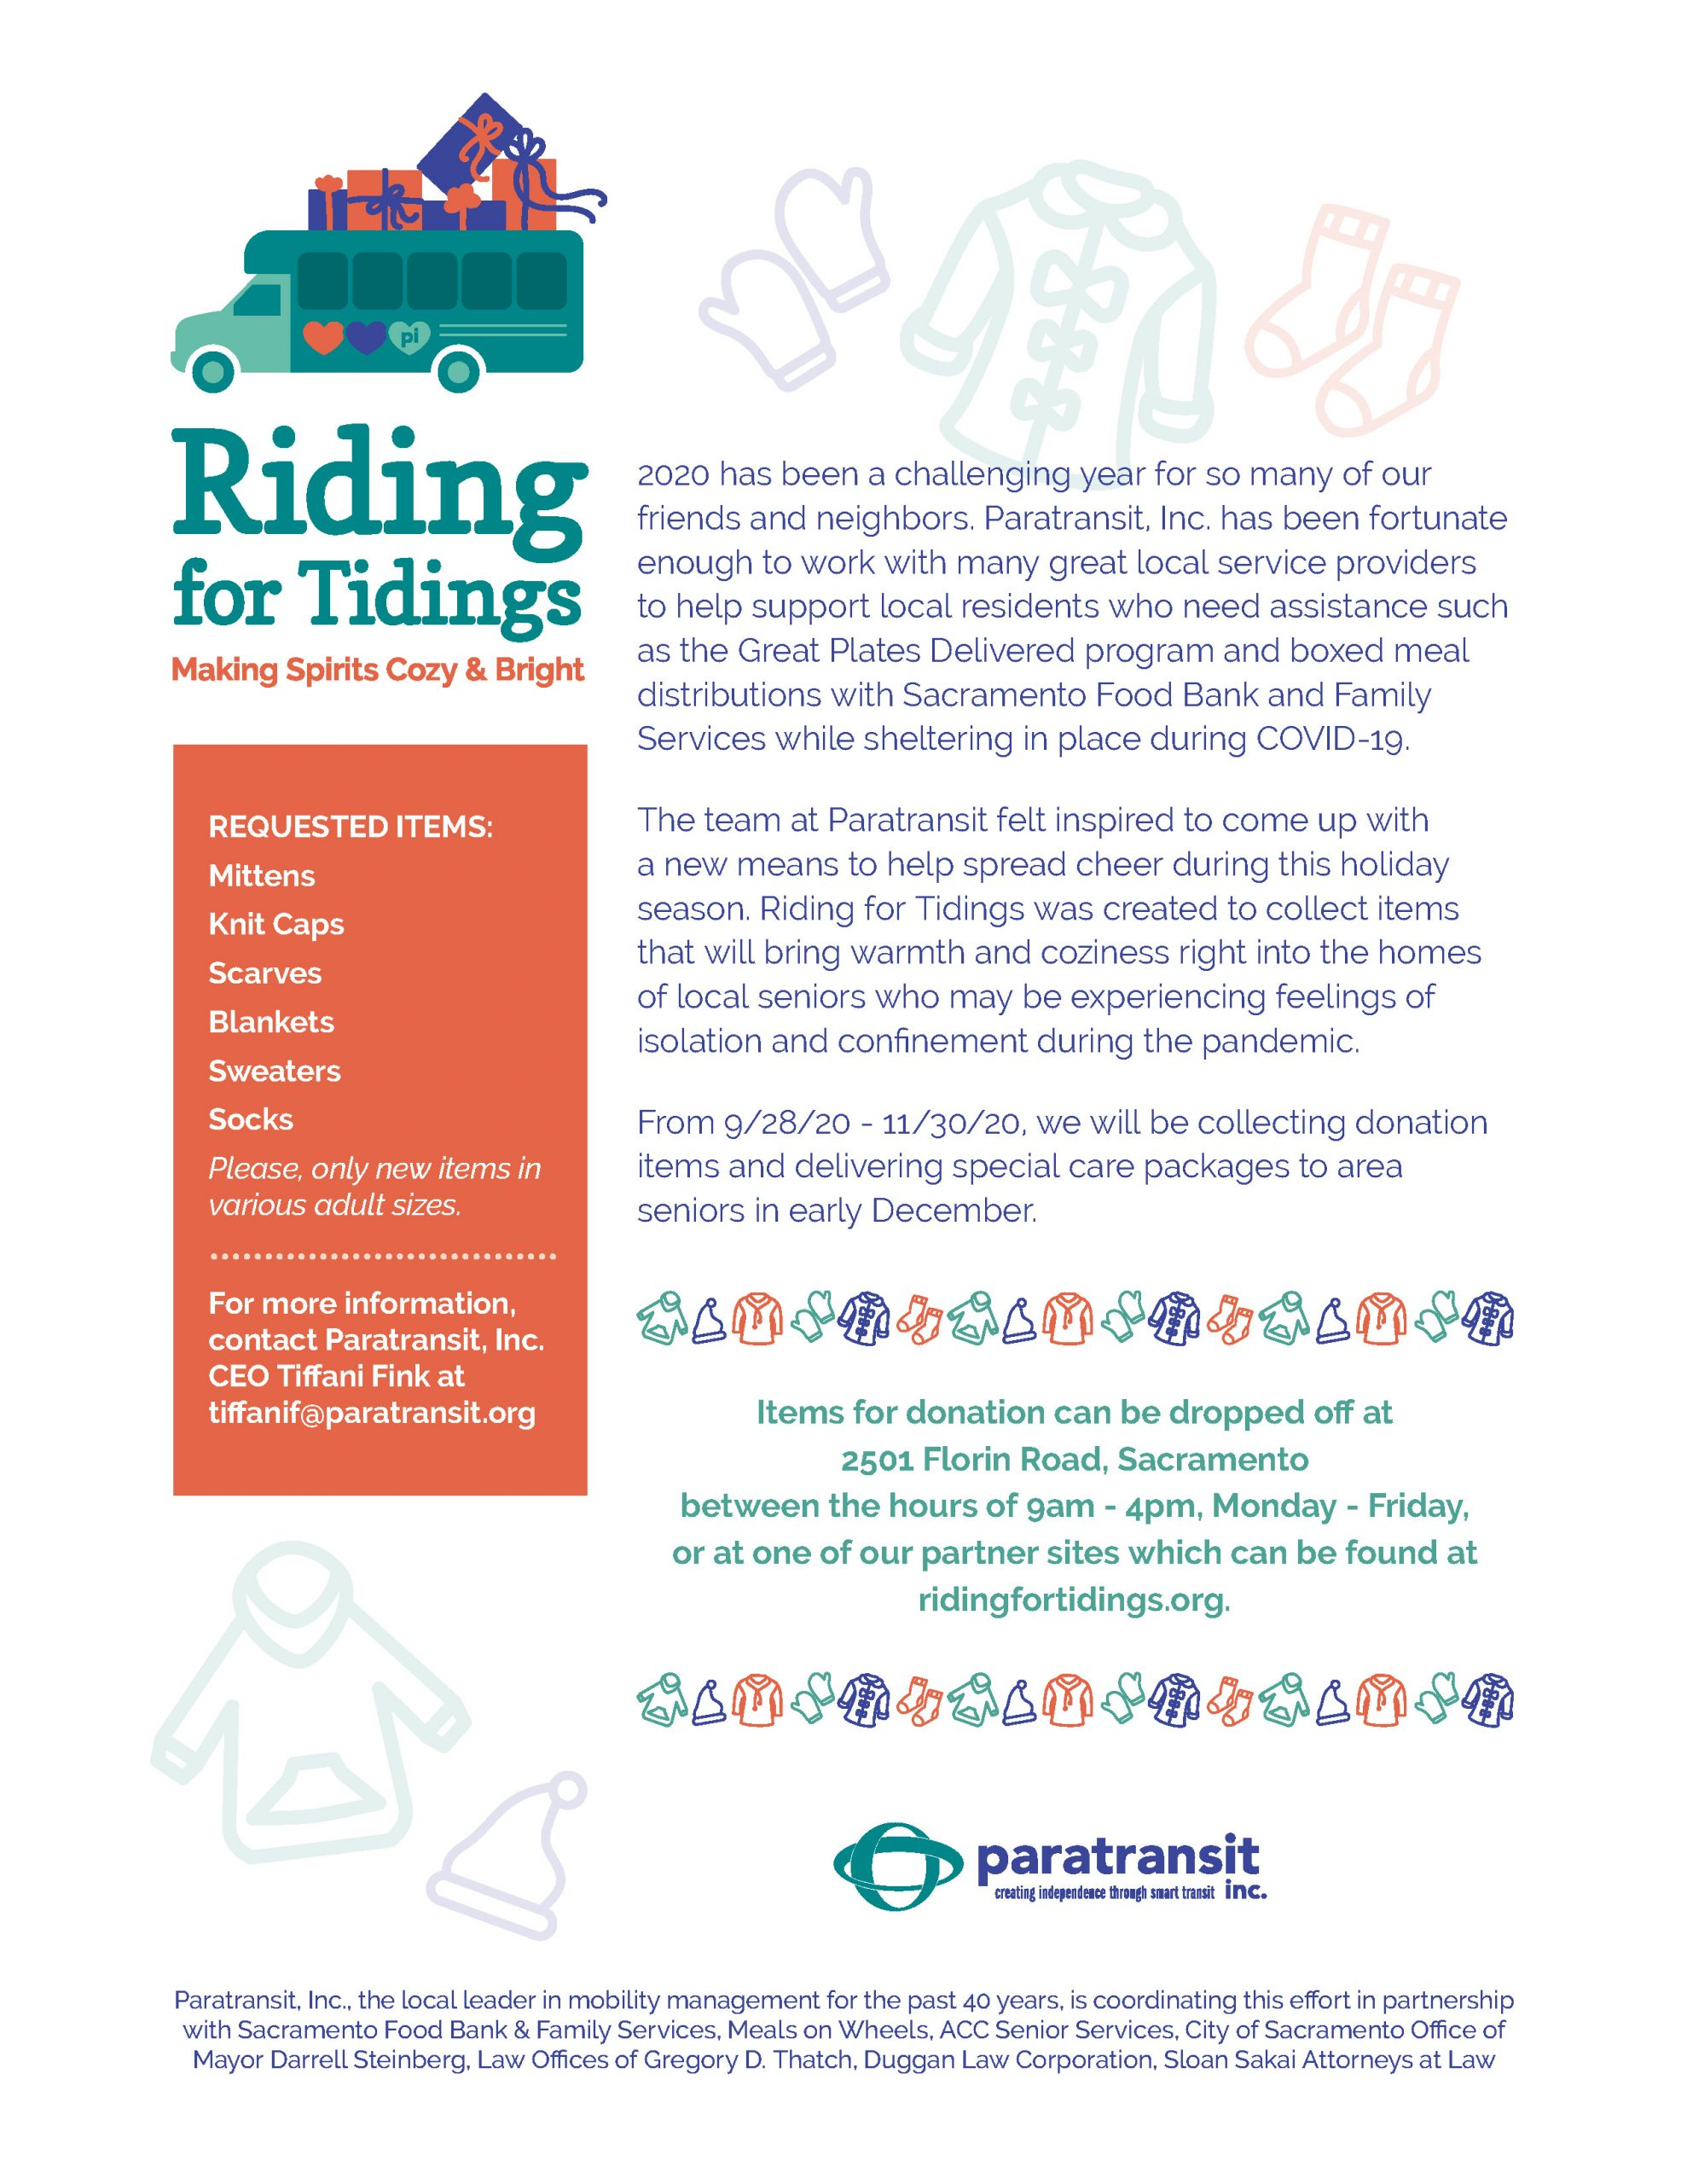 Riding For Tidings